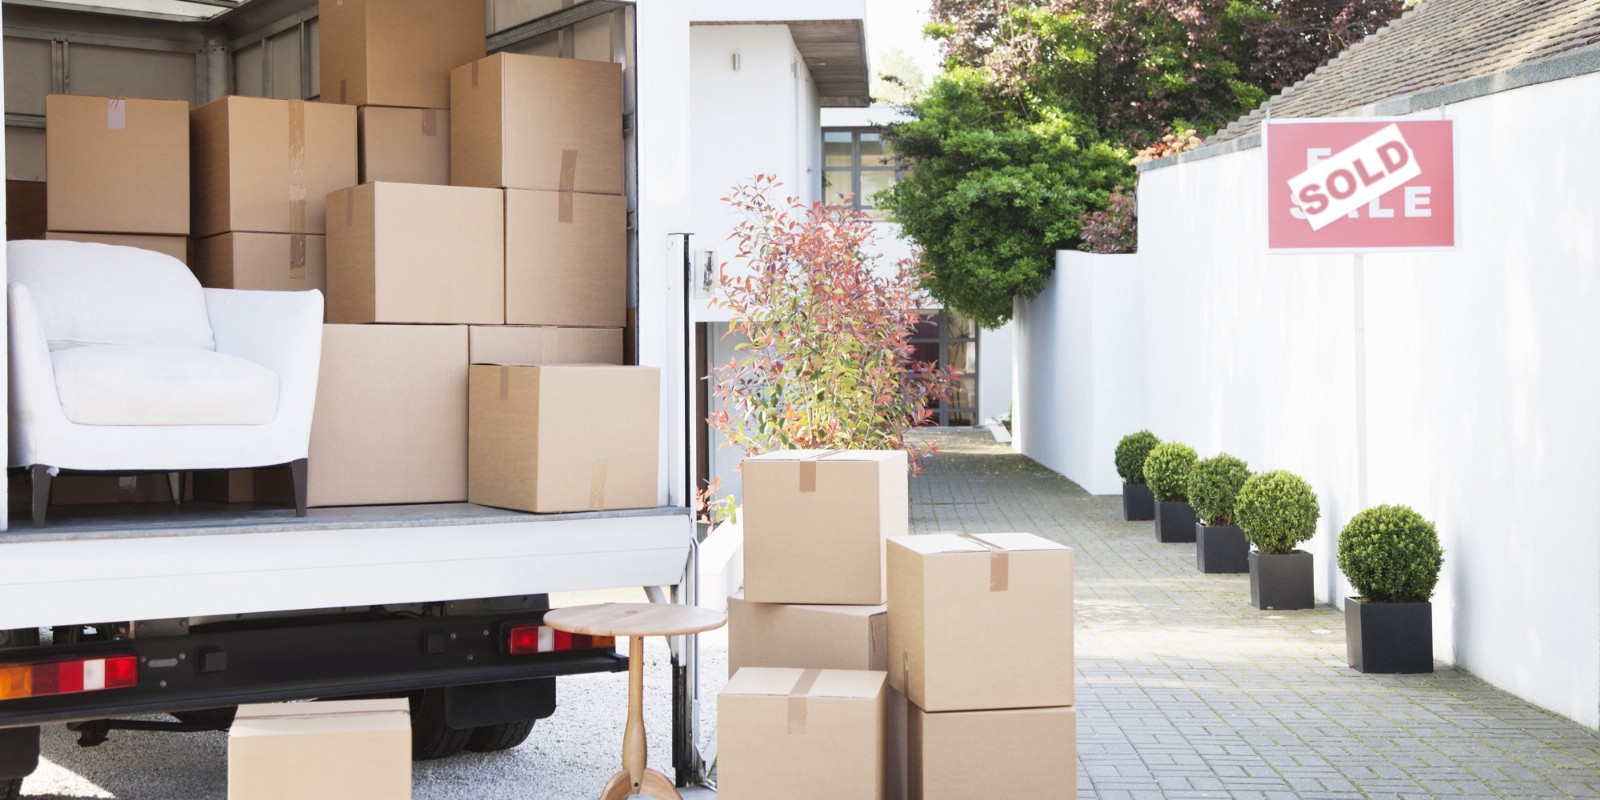 Best Priced Movers In Houston, TX U2014 Last Updated October 2018